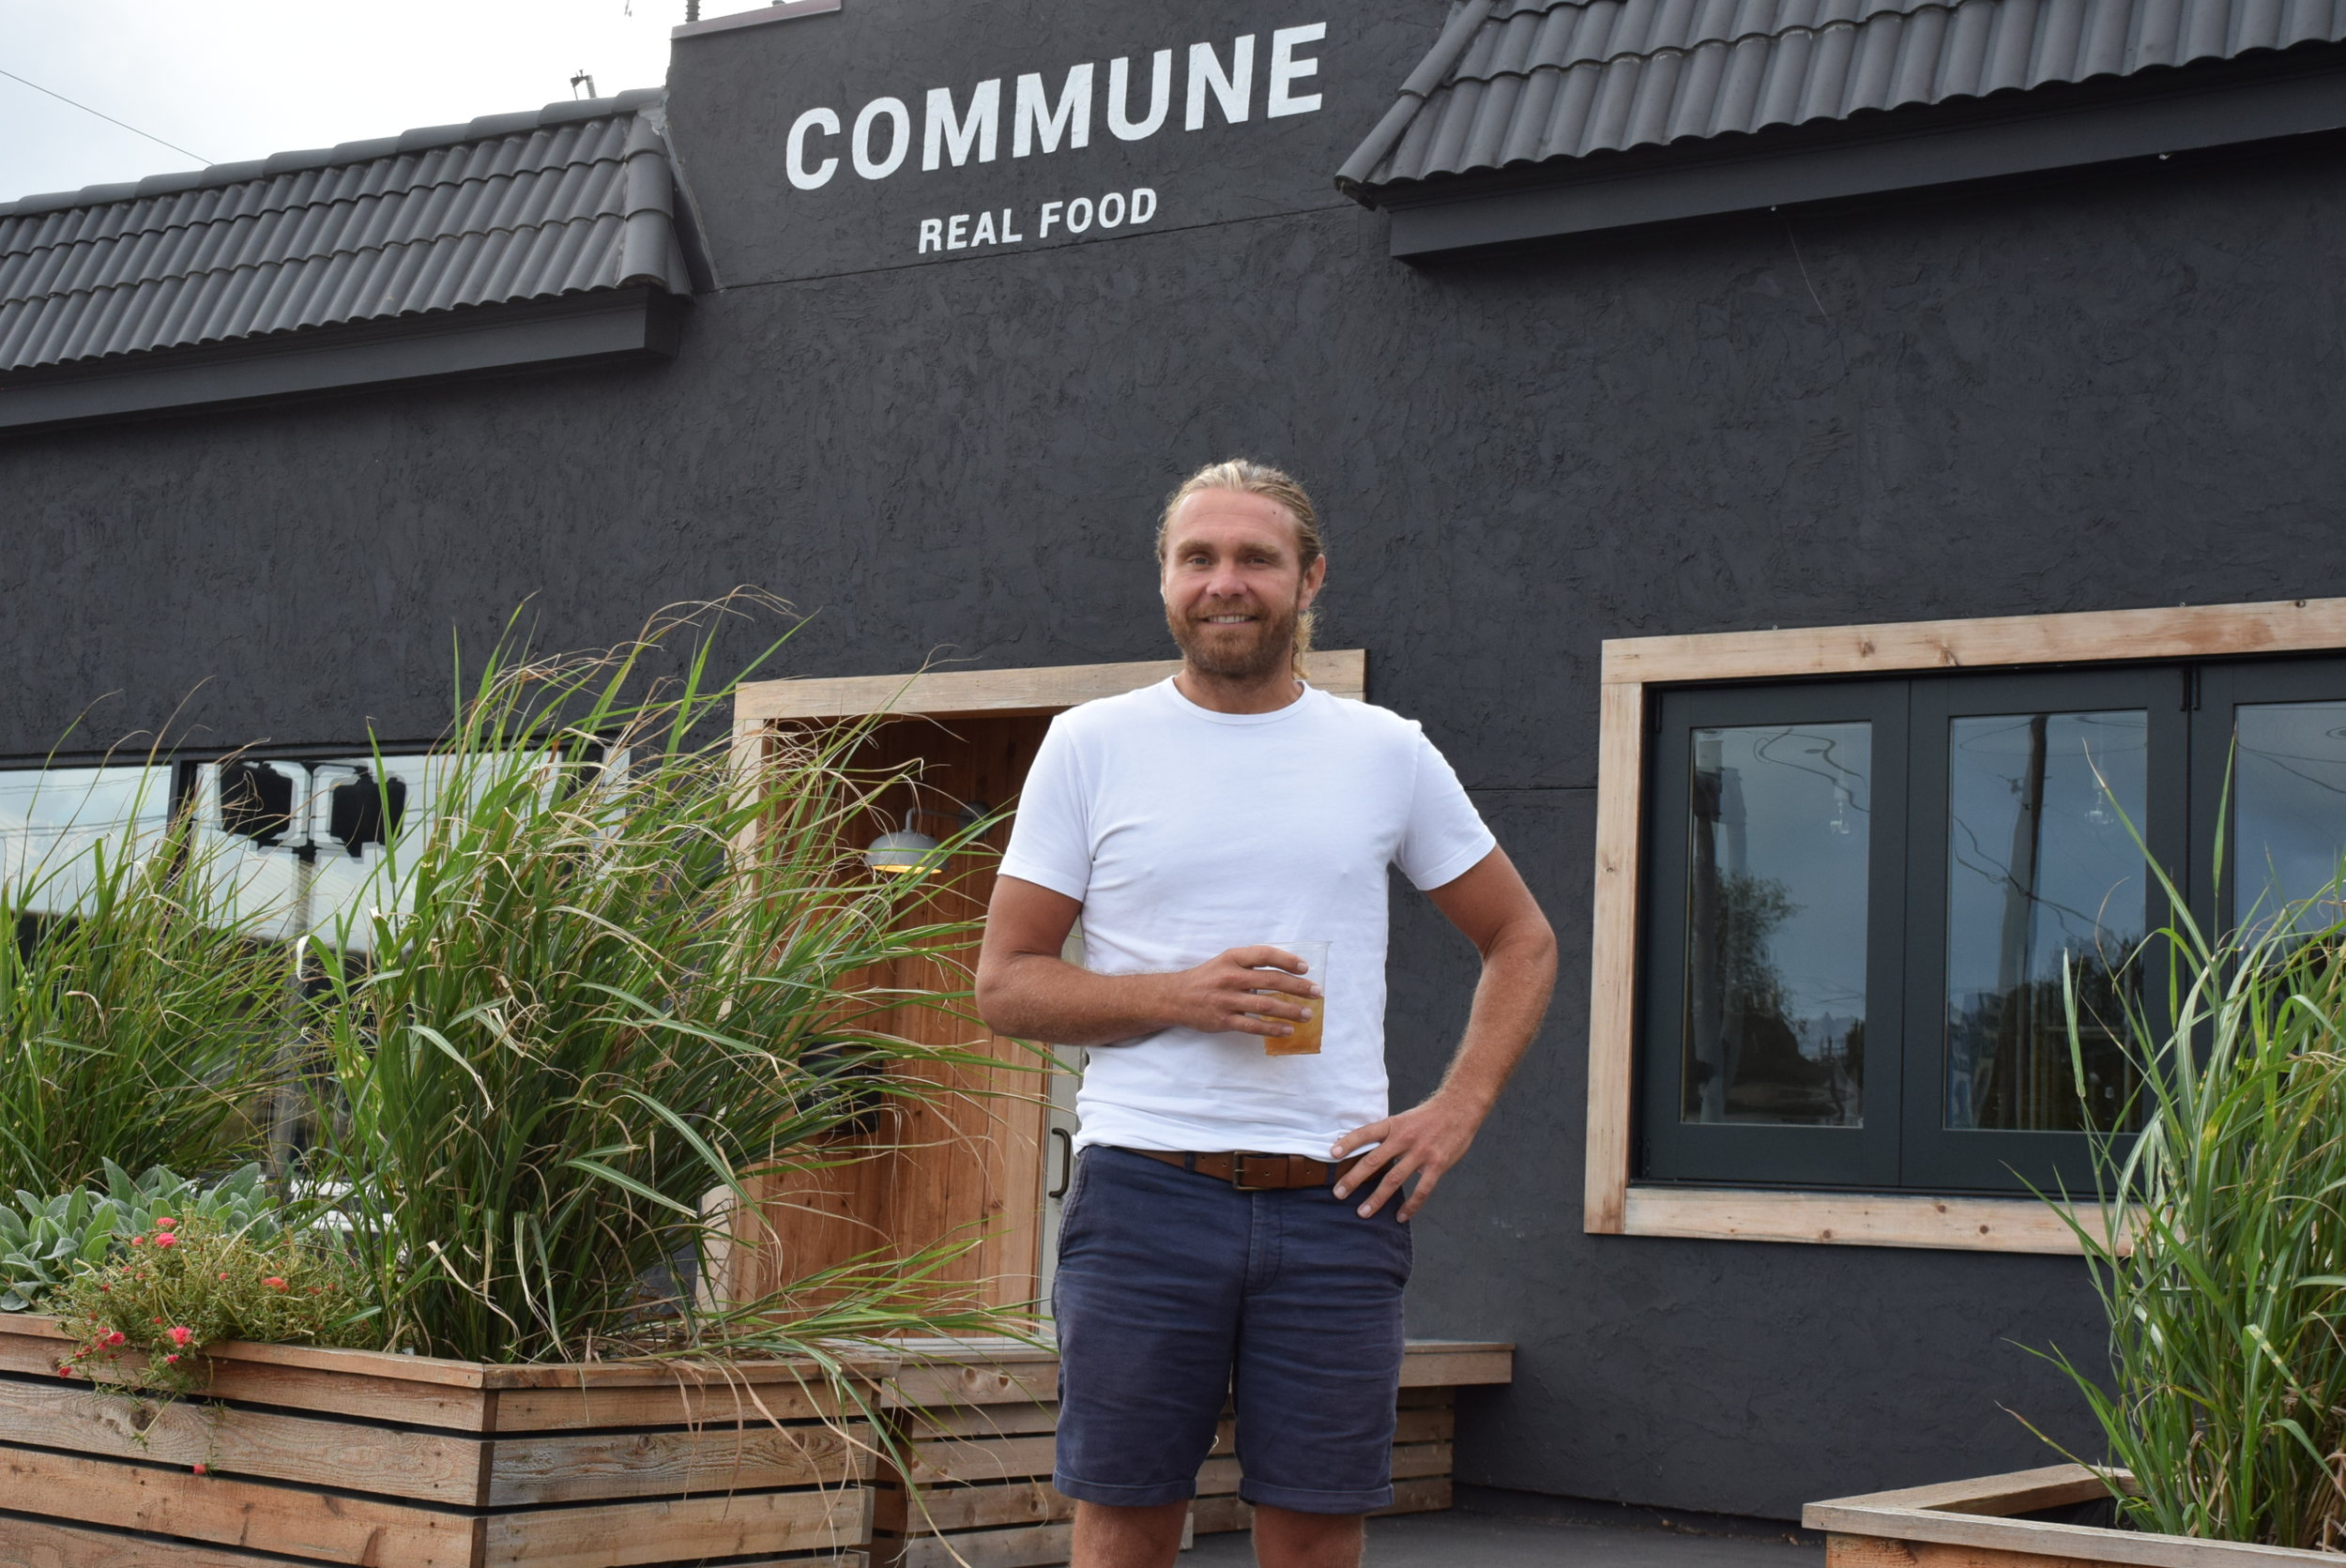 Kevin Jamison, owner of Commune